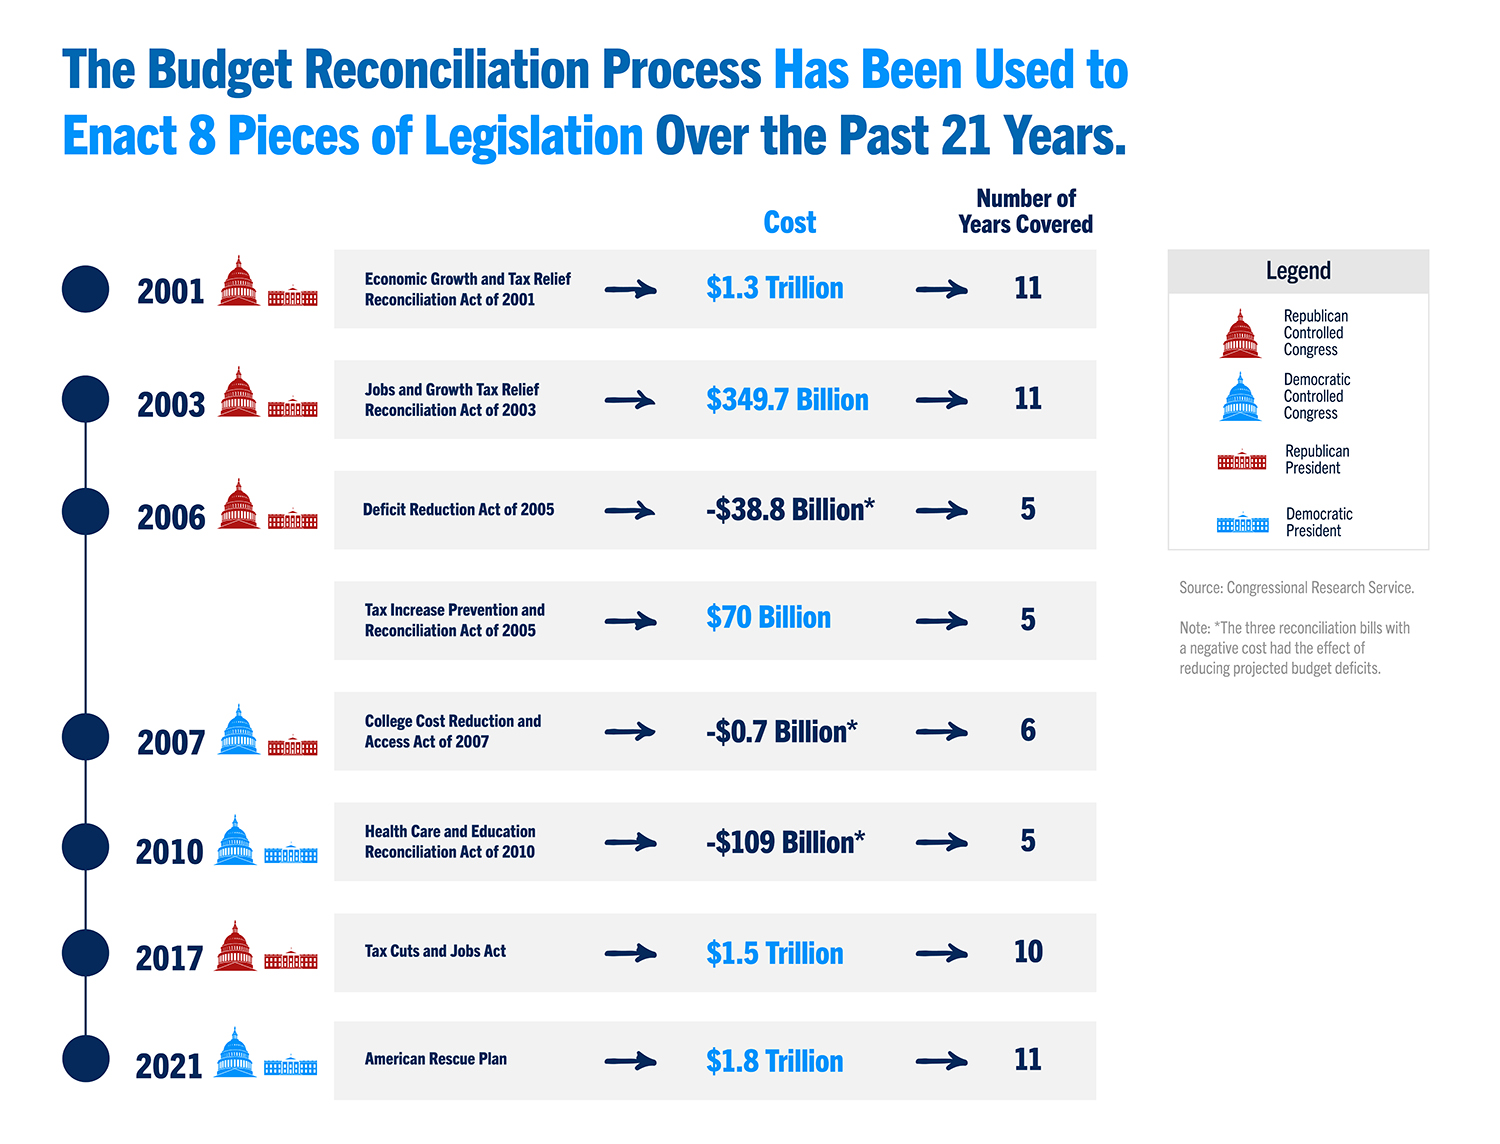 The budget reconciliation process has been used to enact 8 pieces of legislation over the past 20 years.